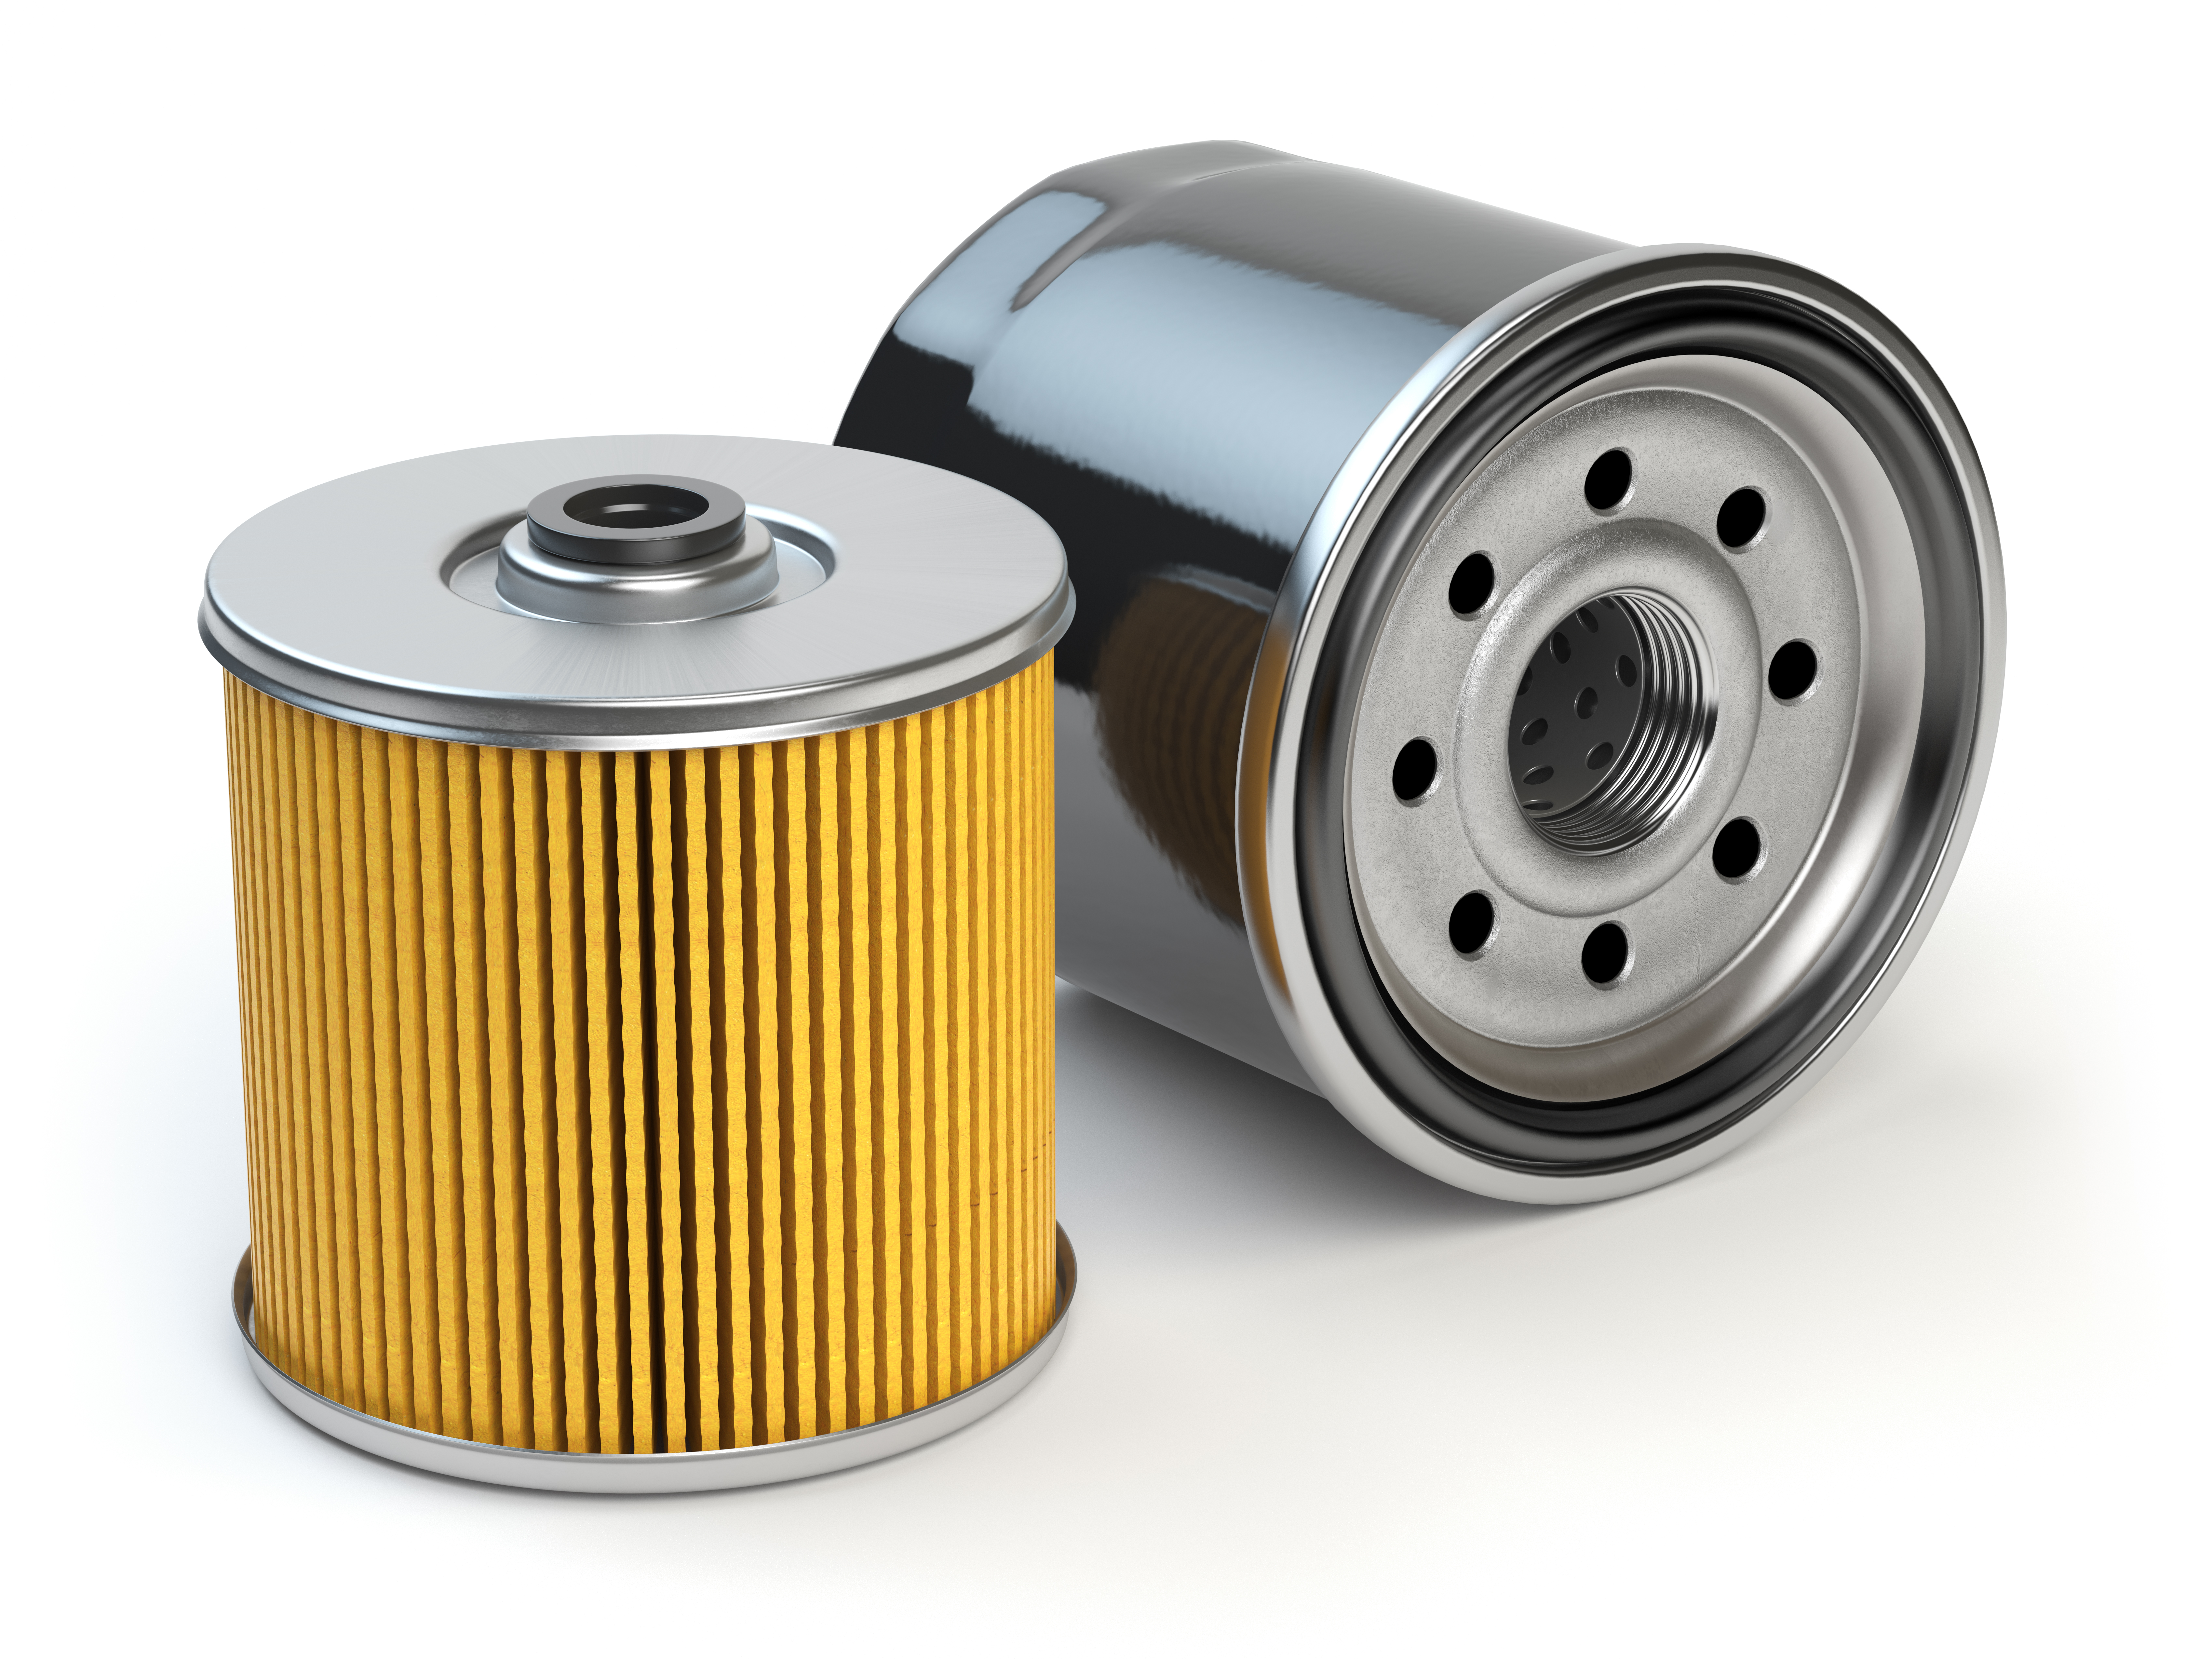 Oil Filter Change >> How To Change An Oil Filter Advance Auto Parts